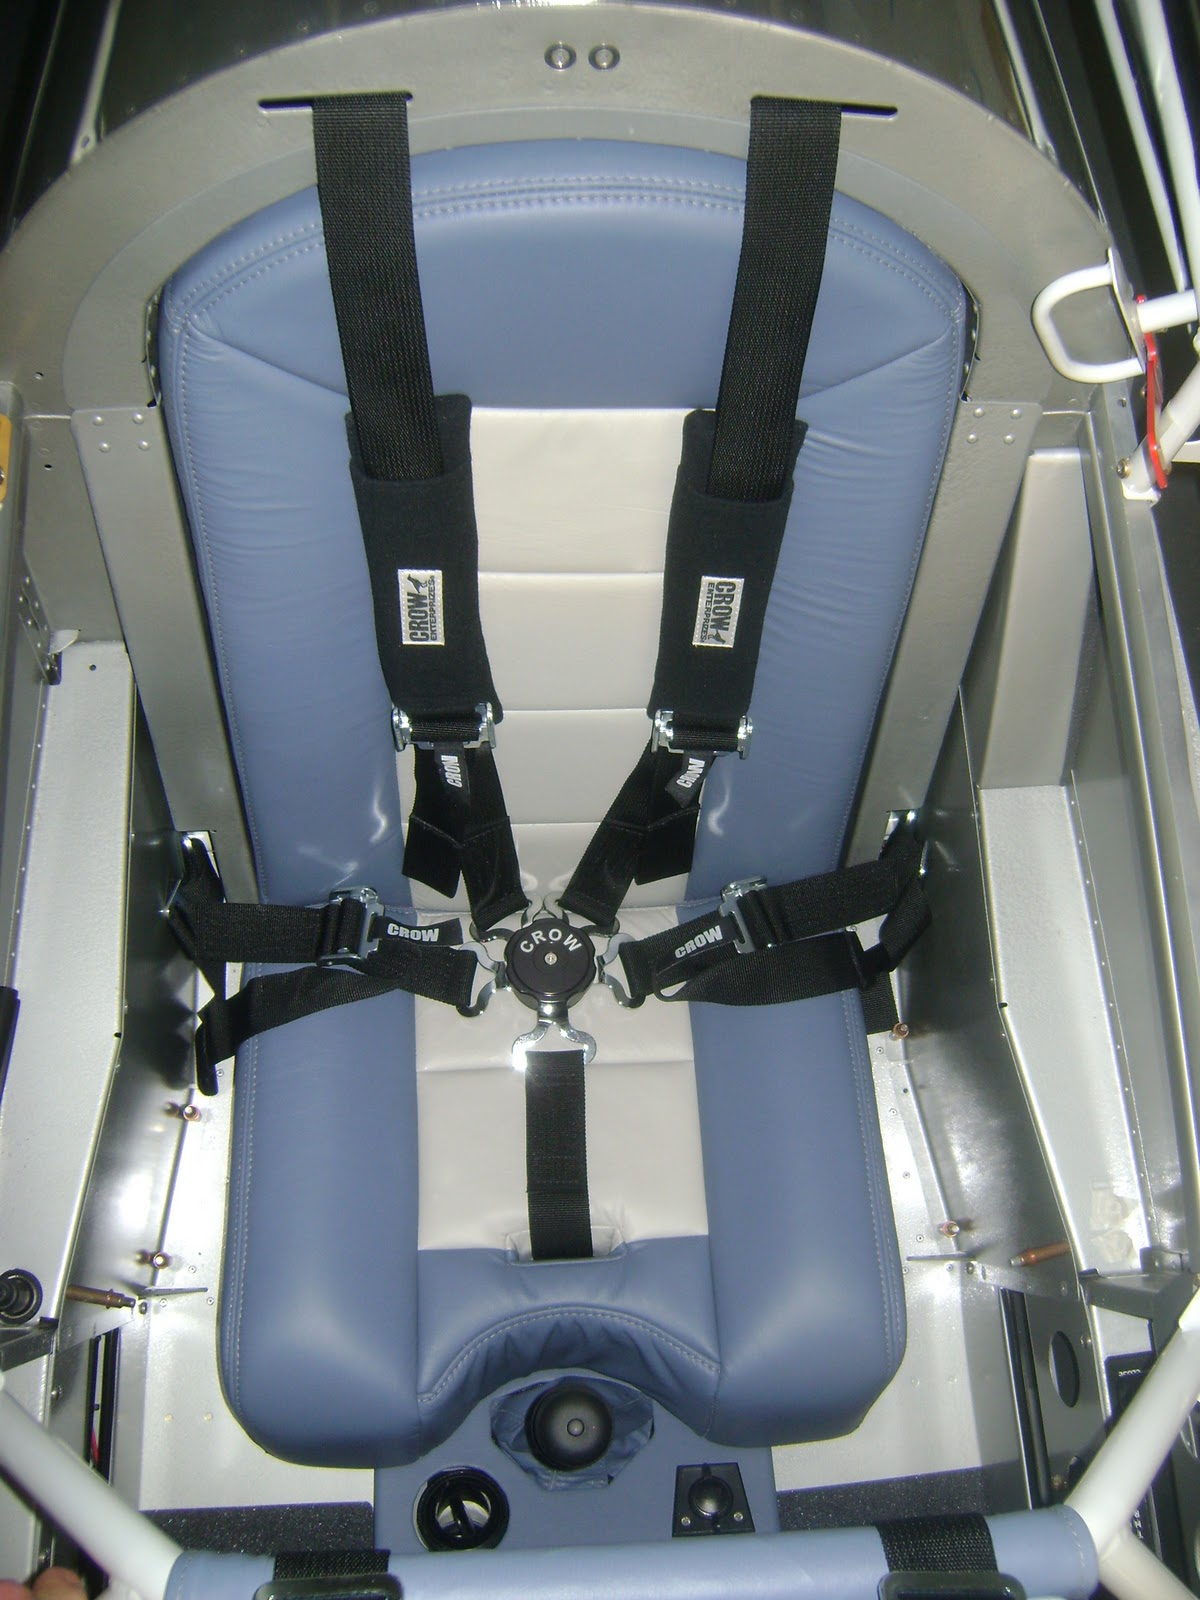 Welcome To JT's RV8 Aircraft Factory!: Custom Seats, Seat